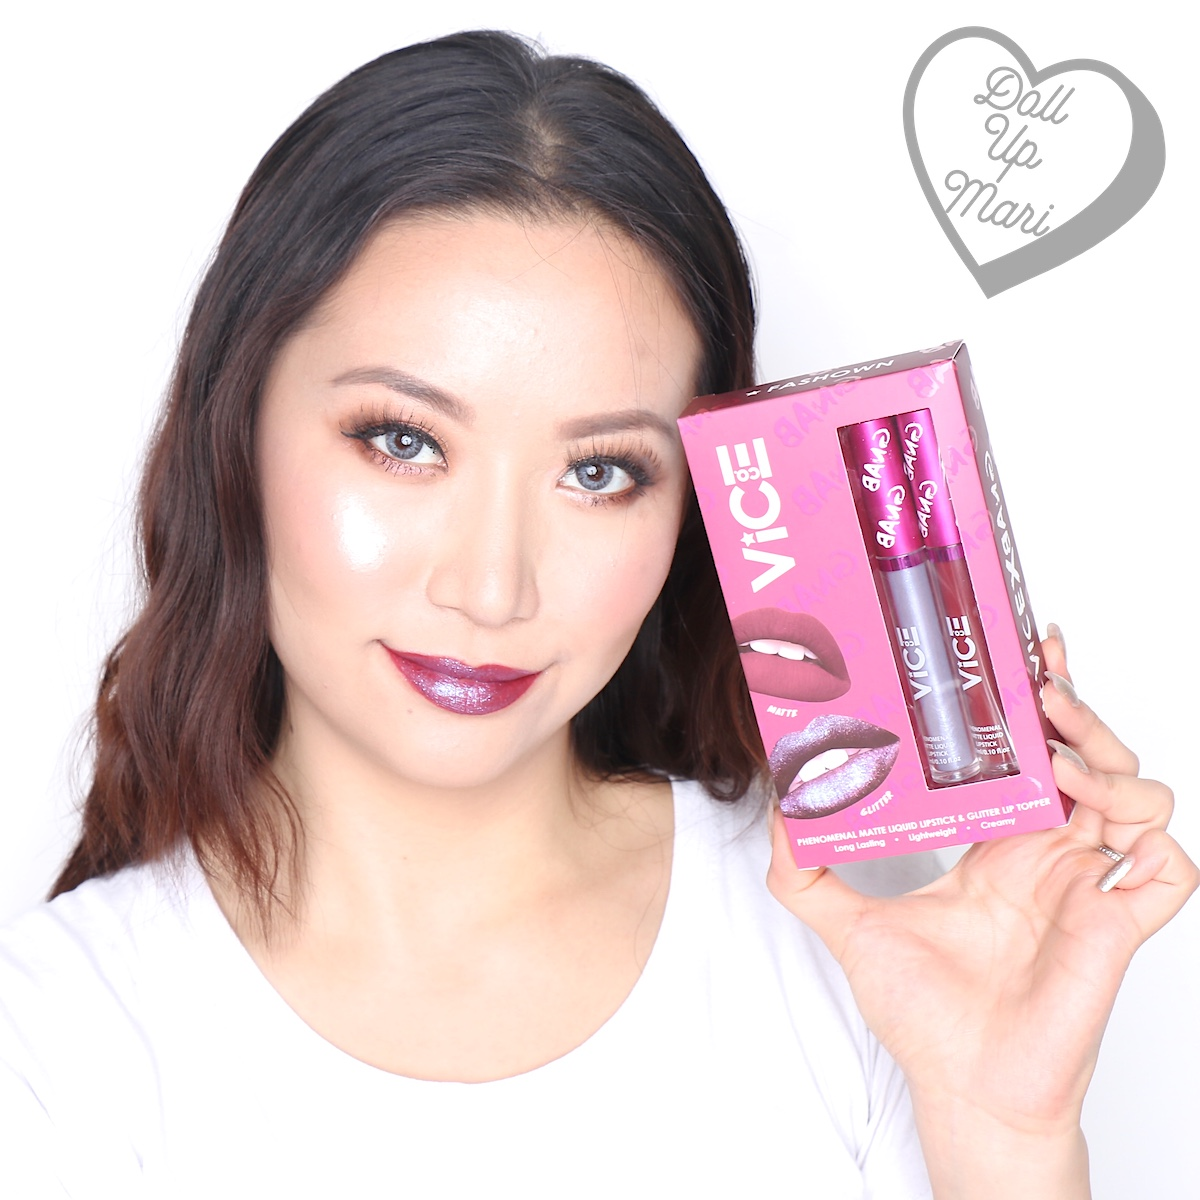 Mari wearing both matte liquid lipstick and glitter topper of the Fashown set of Vice X Bang lip set collection